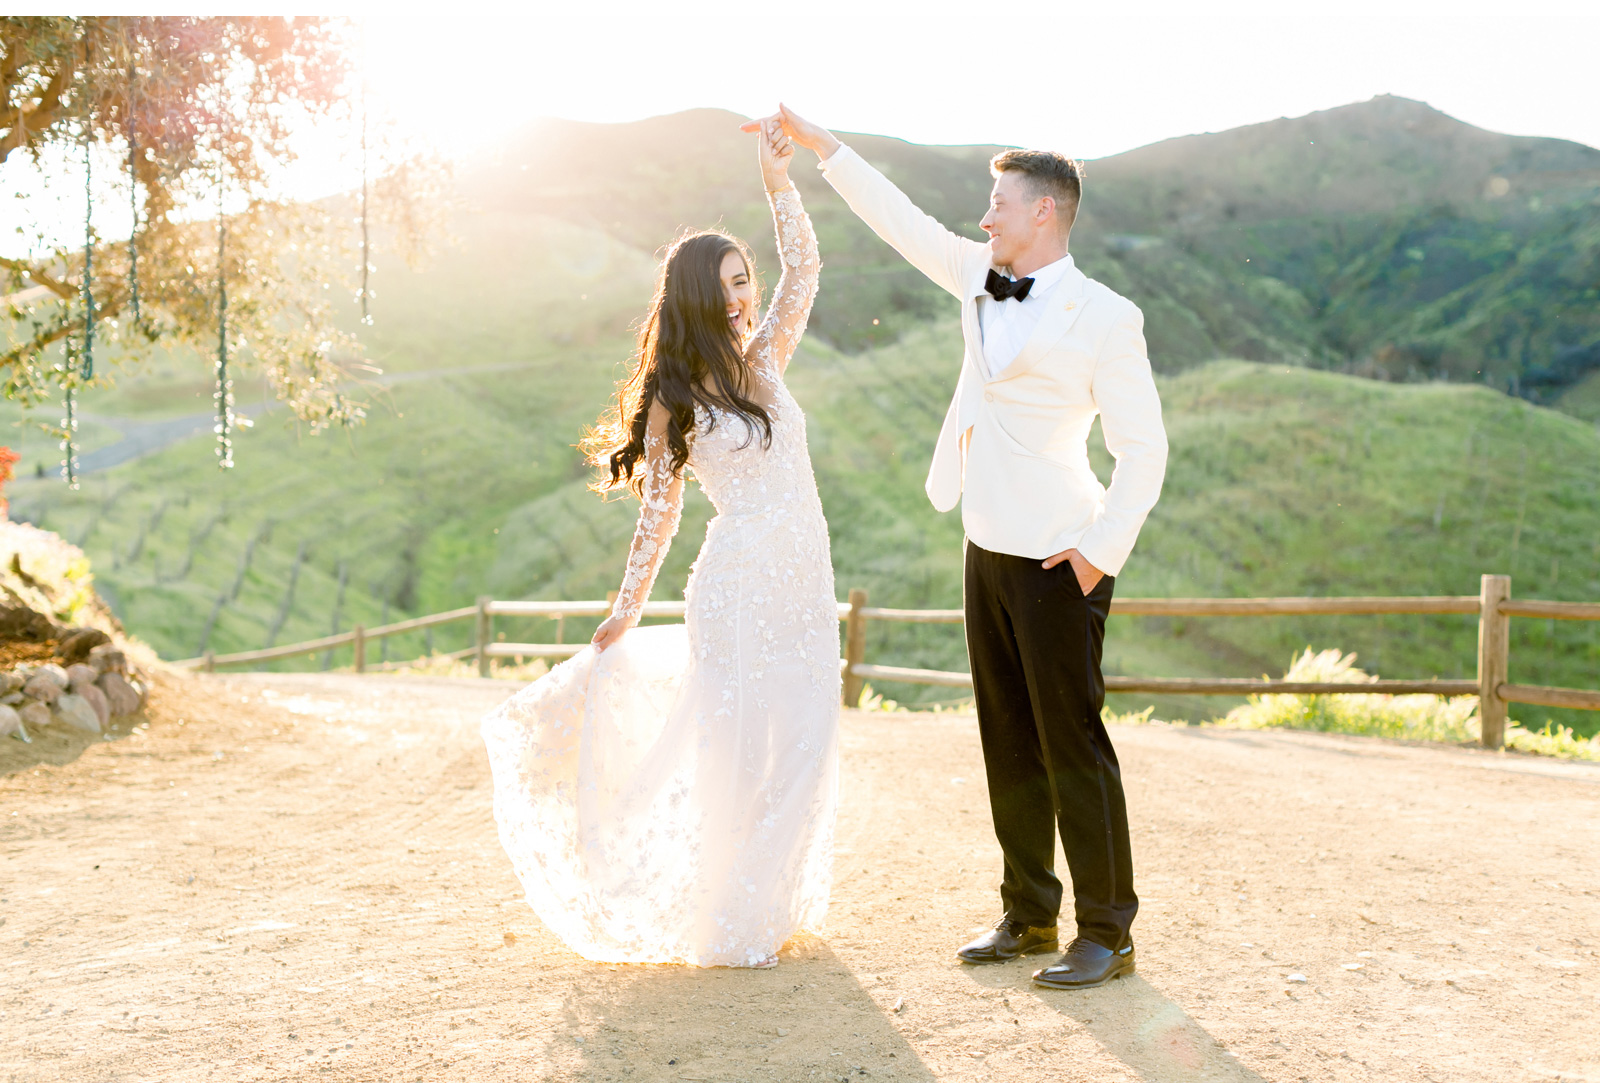 Style-Me-Pretty-Malibu-Wedding-Photogrpaher-Southern-California-Wedding-Photographer-Natalie-Schutt-Photography-_02.jpg